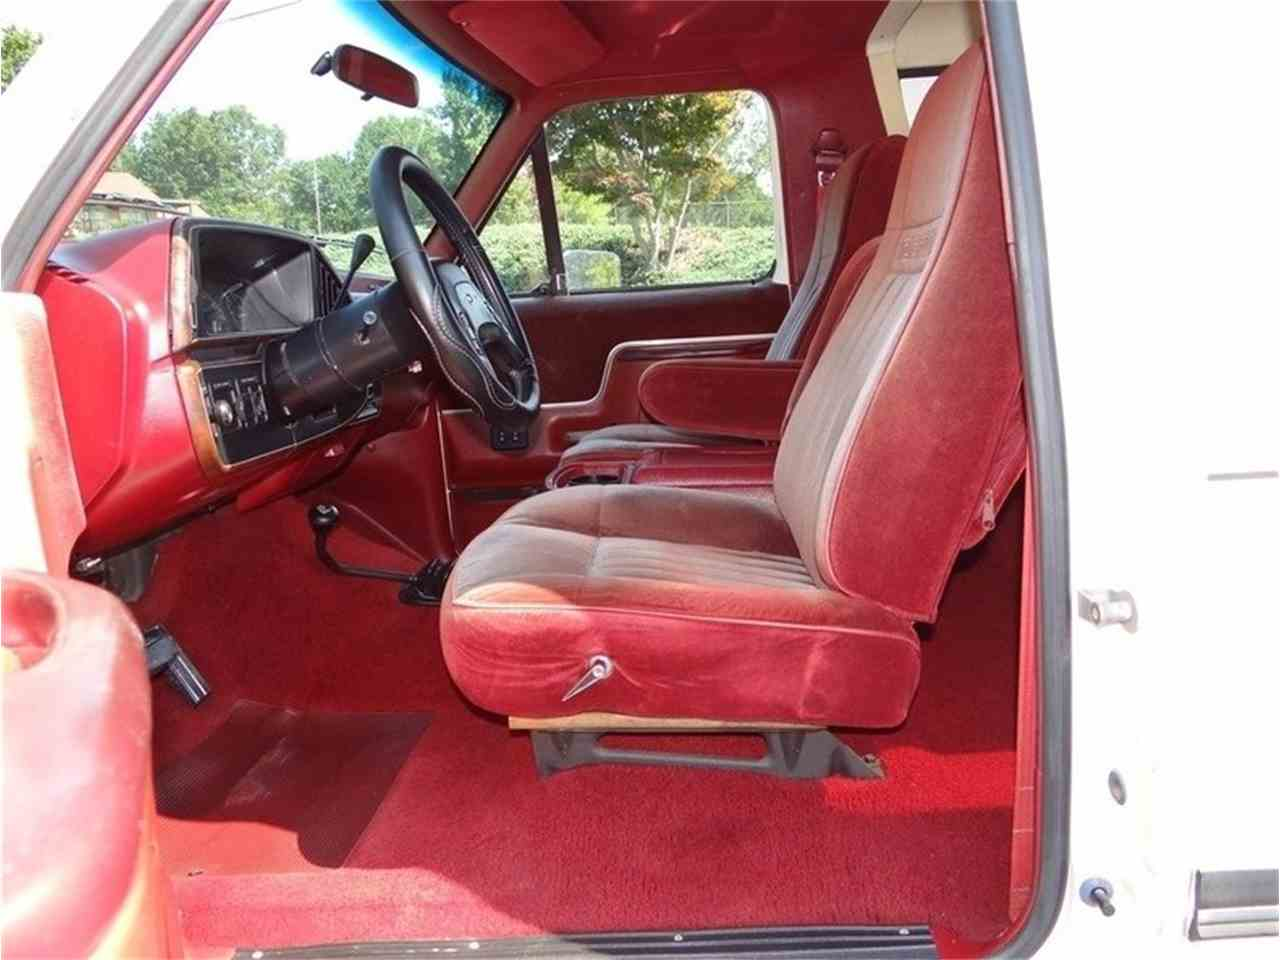 Large Picture of 1987 Bronco located in North Carolina Auction Vehicle Offered by GAA Classic Cars Auctions - LVQS